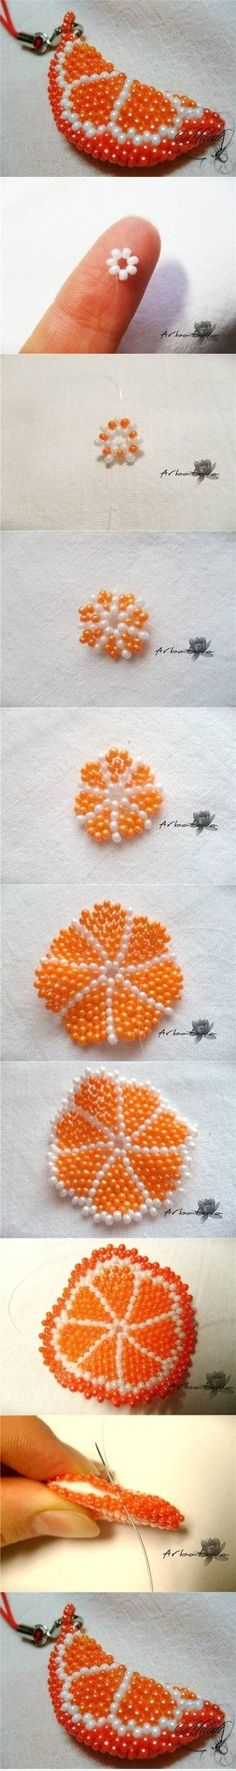 DIY Beaded Orange Slice Key Chain 2